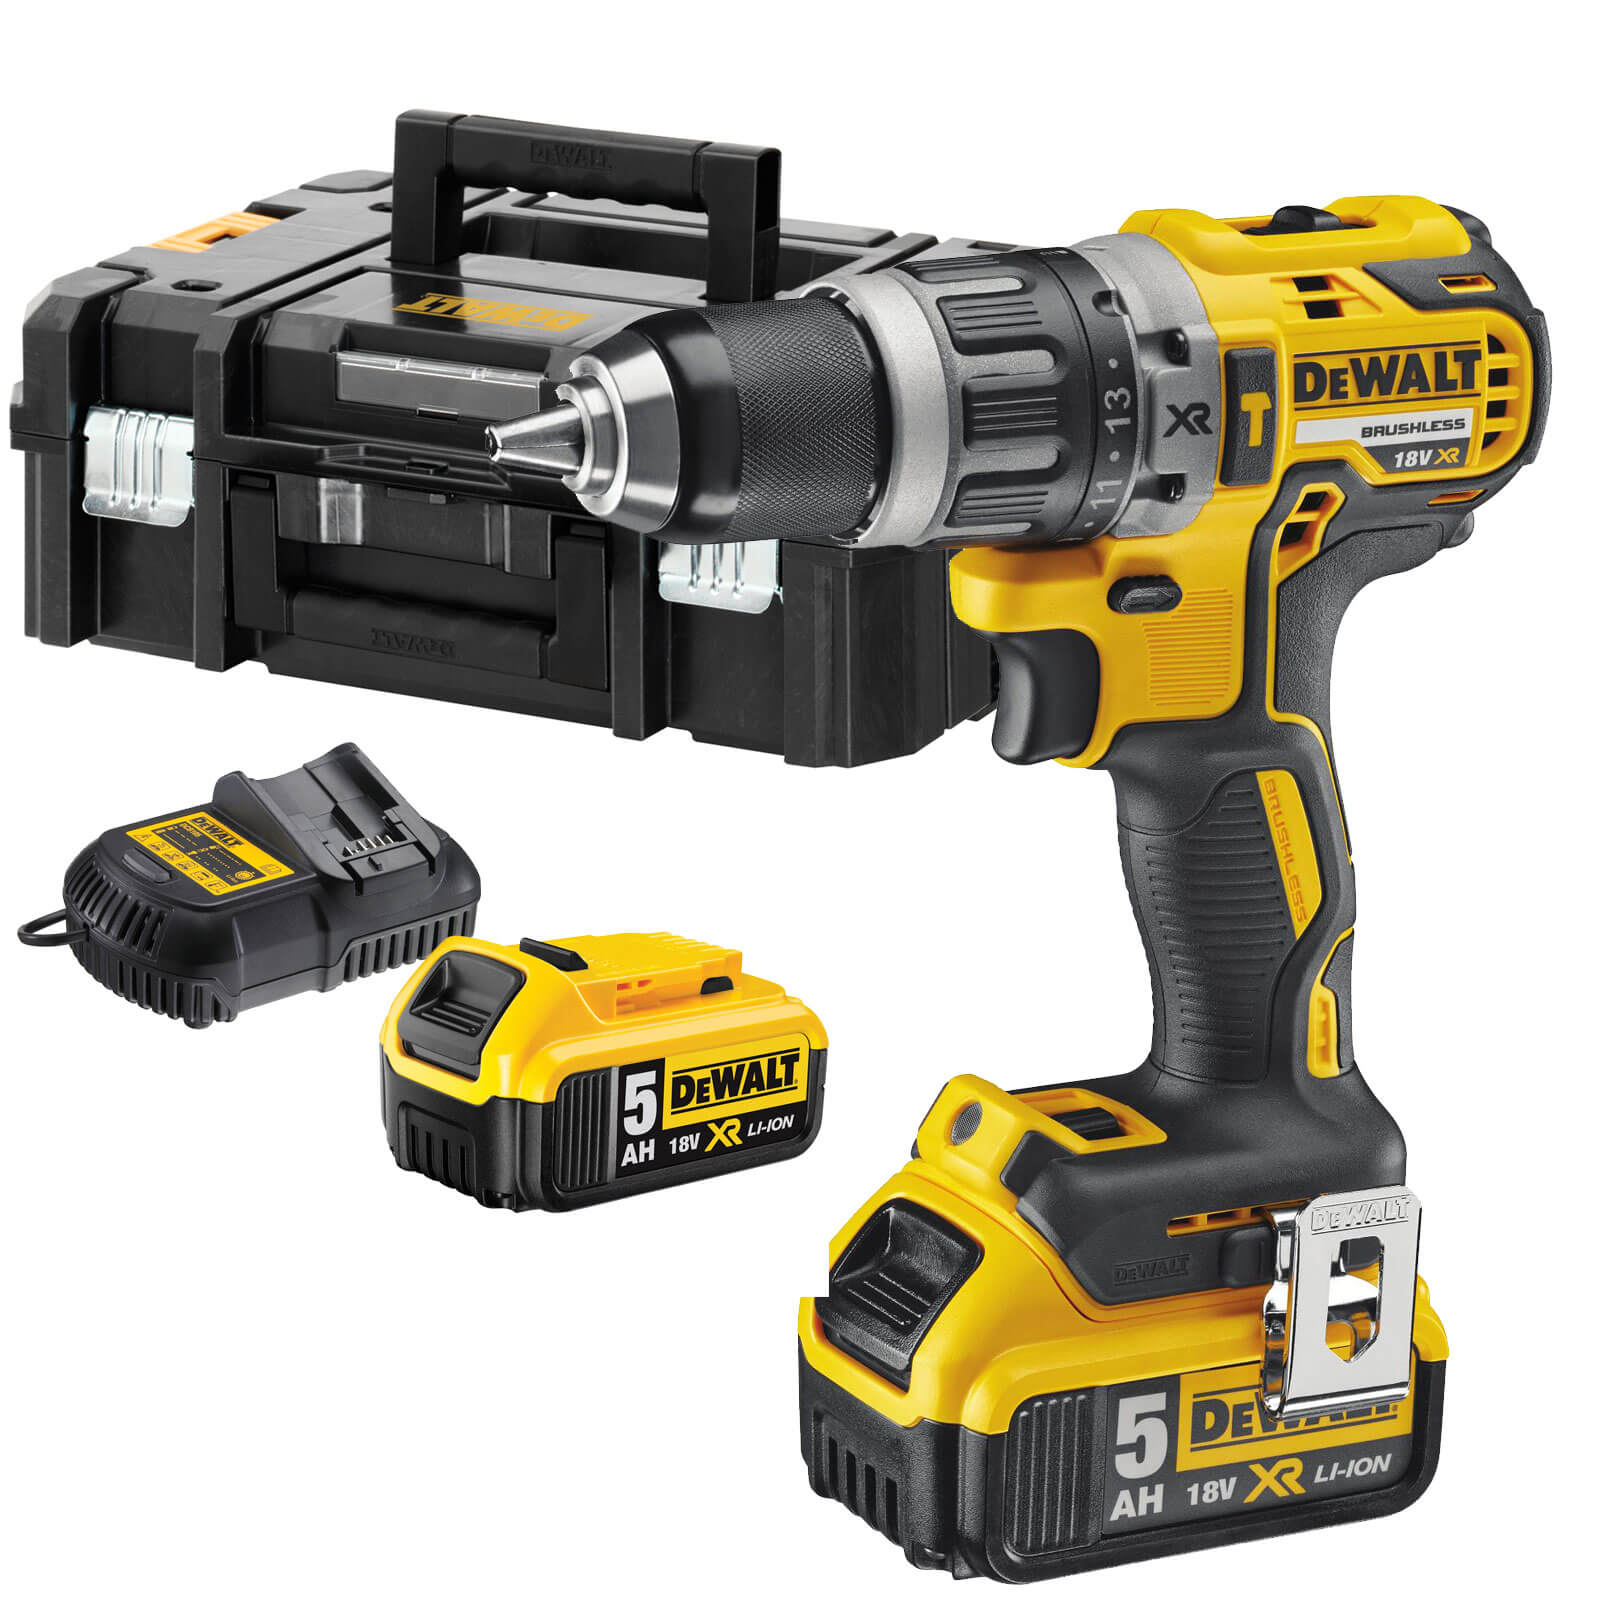 buy cheap dewalt 18v combi drill compare power tools prices for best uk deals. Black Bedroom Furniture Sets. Home Design Ideas